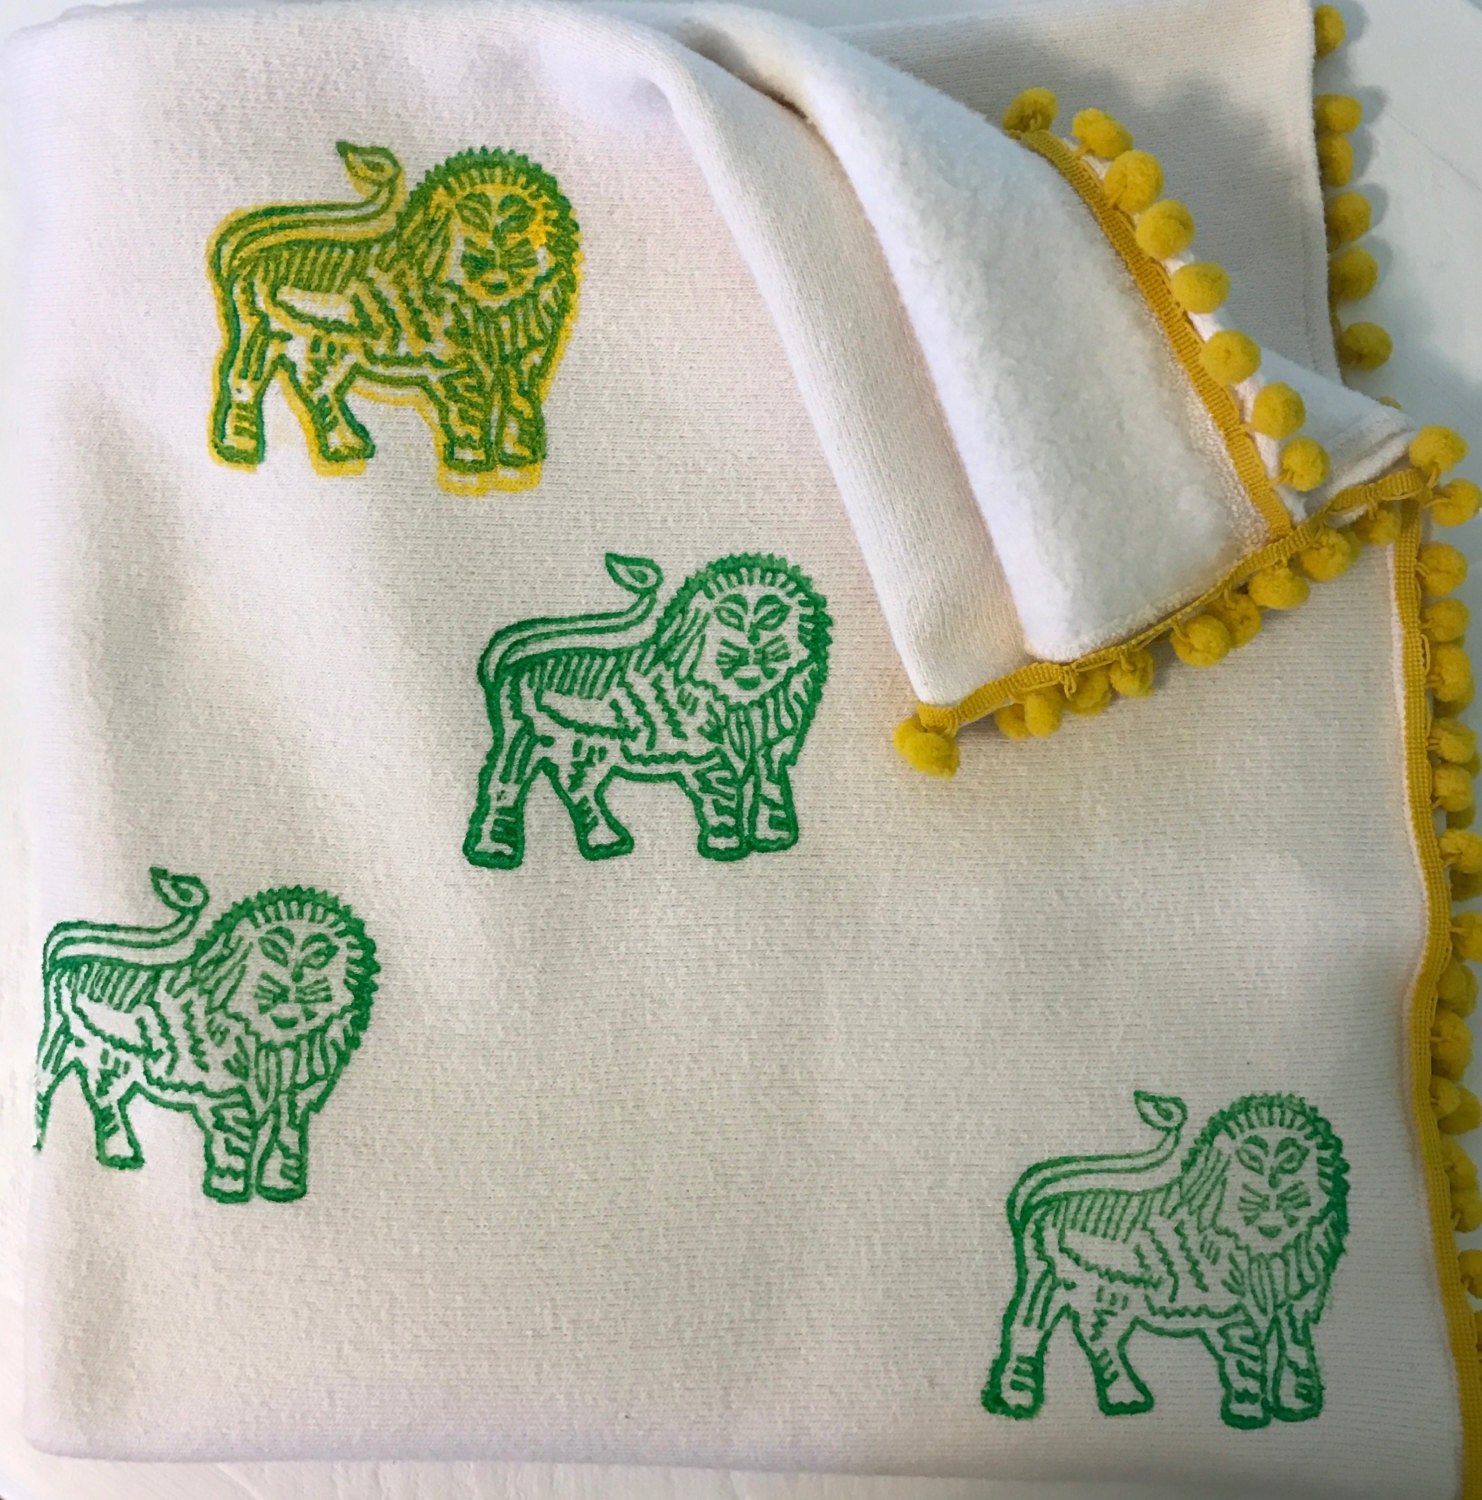 Baby Blanket / Organic Cotton Velour / Sherpa / Lion / Indian Print / Toddler / Boy Girl / Warm / Gift / Swaddle / Nursery Décor / Crib